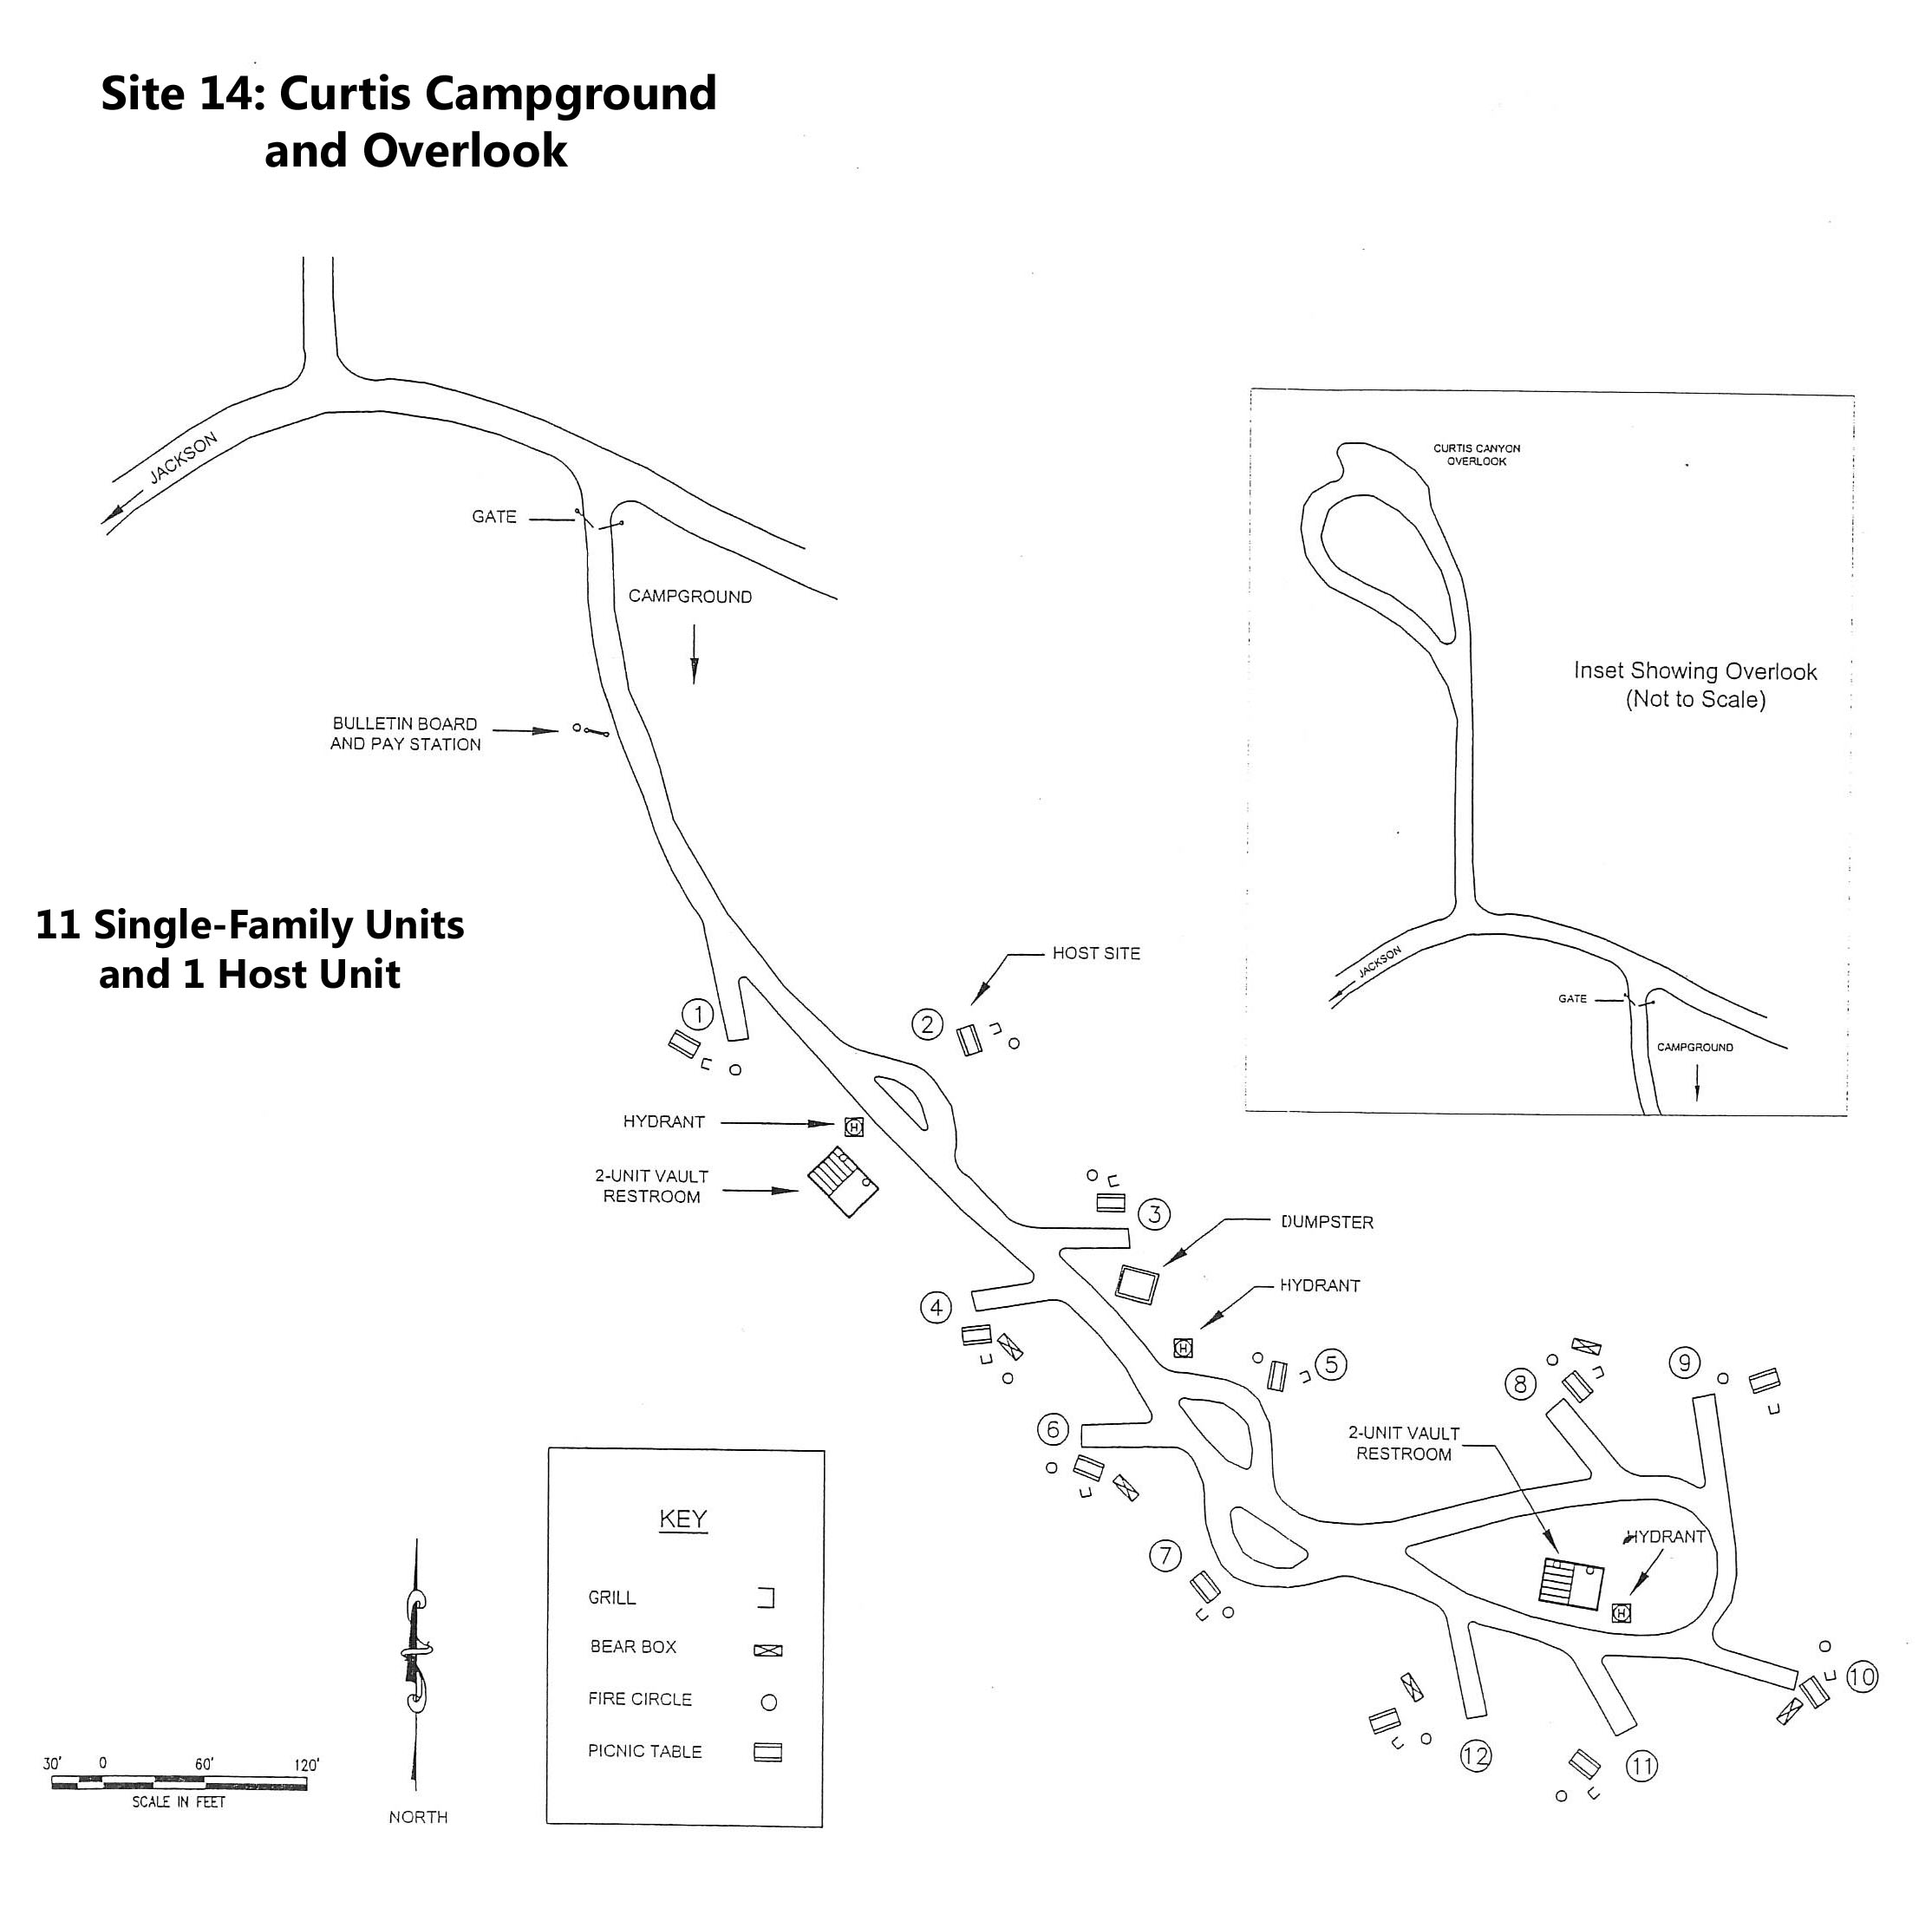 Curtis Campground Layout